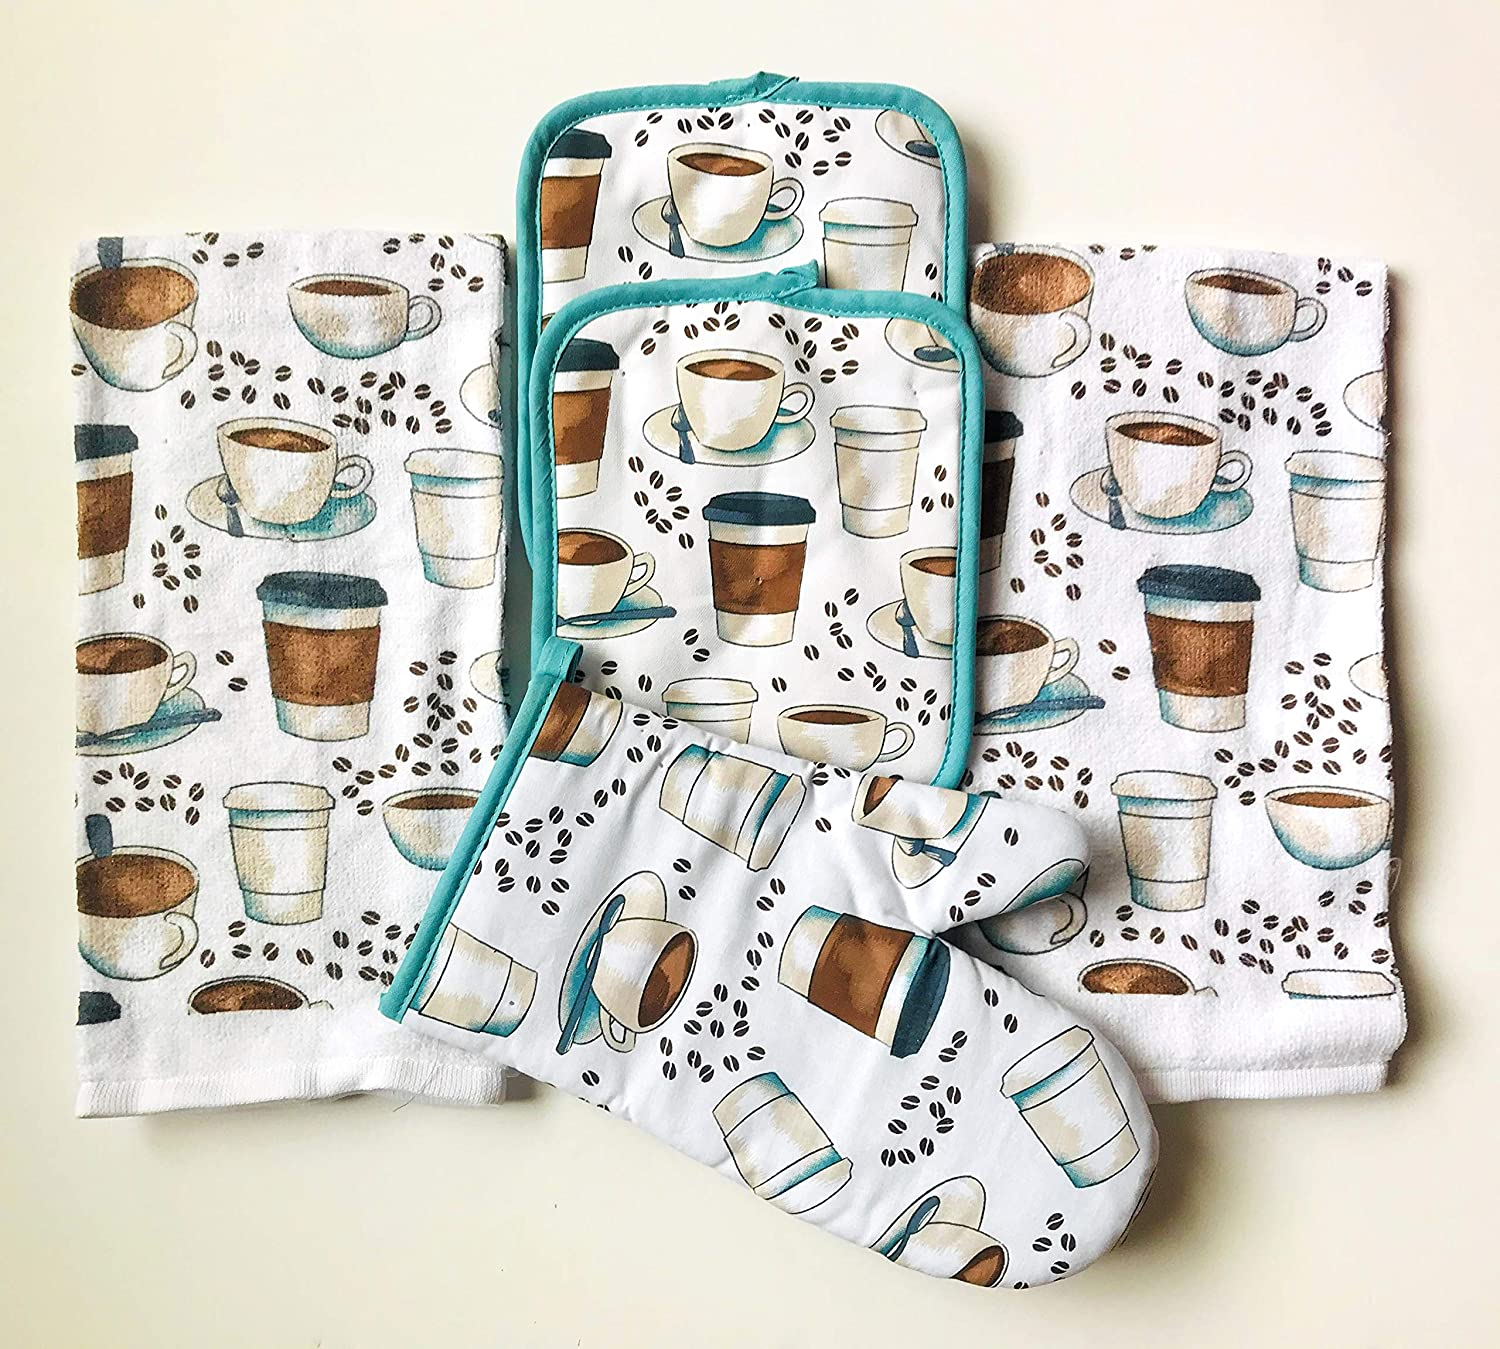 5 PC NEW Aqua Oven Mitt Dish Towel Kitchen Towel Set Pot Holders